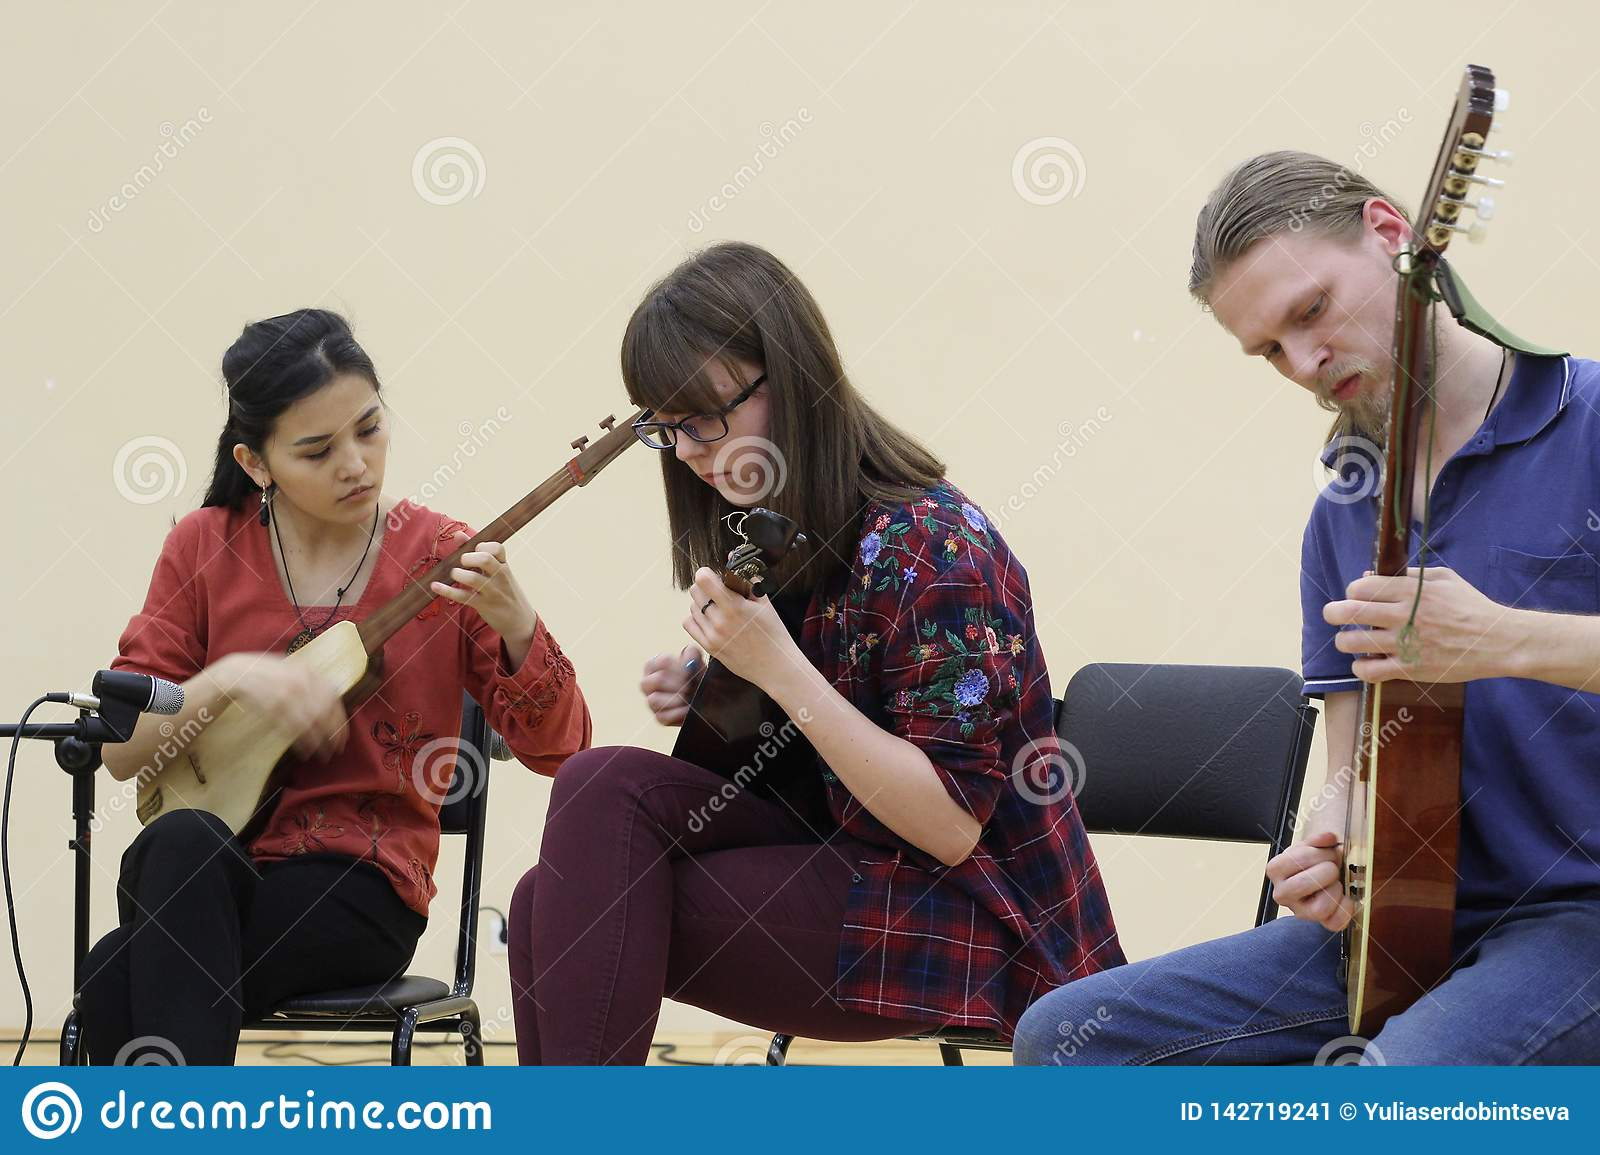 Musicians of different ethnicities play together on different musical instruments. Russia, Saratov-March 21, 2018